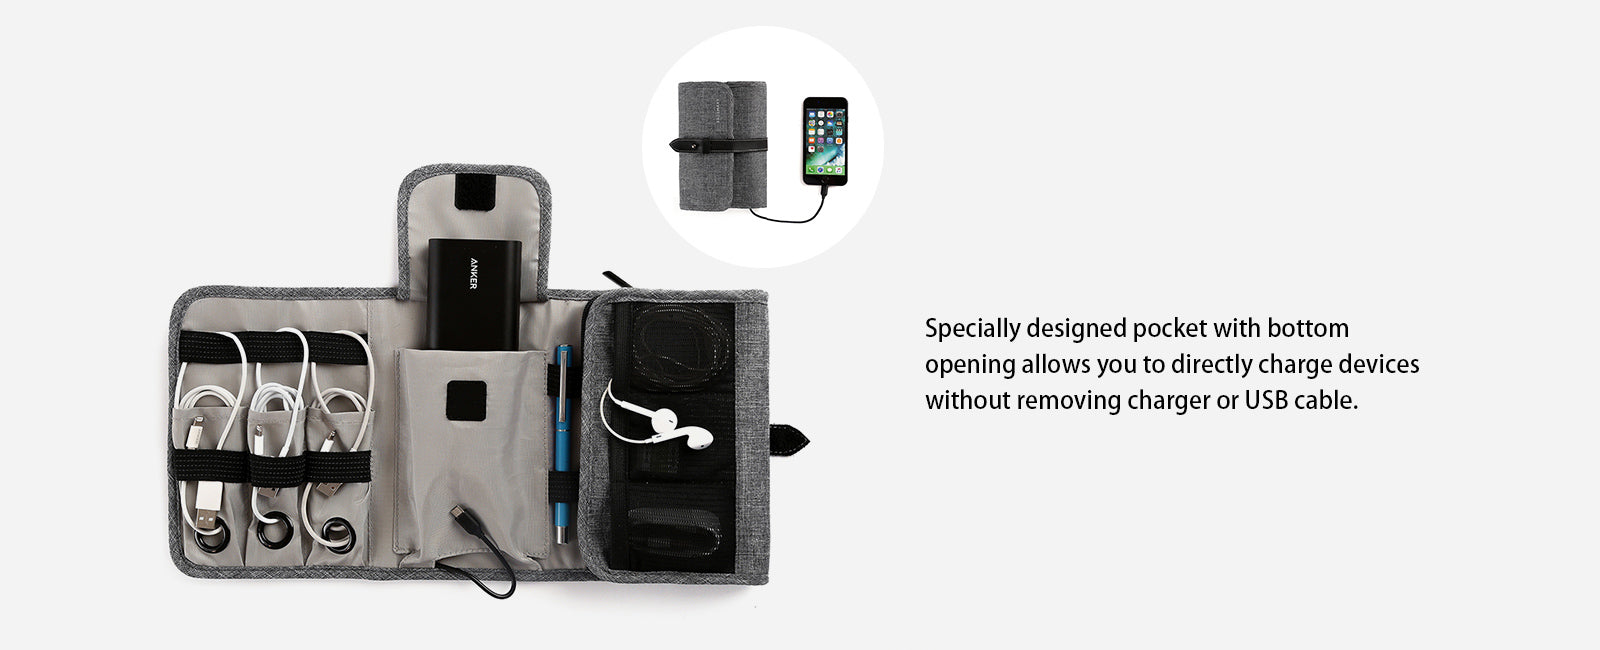 Compact Travel Cable Organizer Portable Electronics Accessories Bag Hard Drive Case for Various USB, Phone, Charger